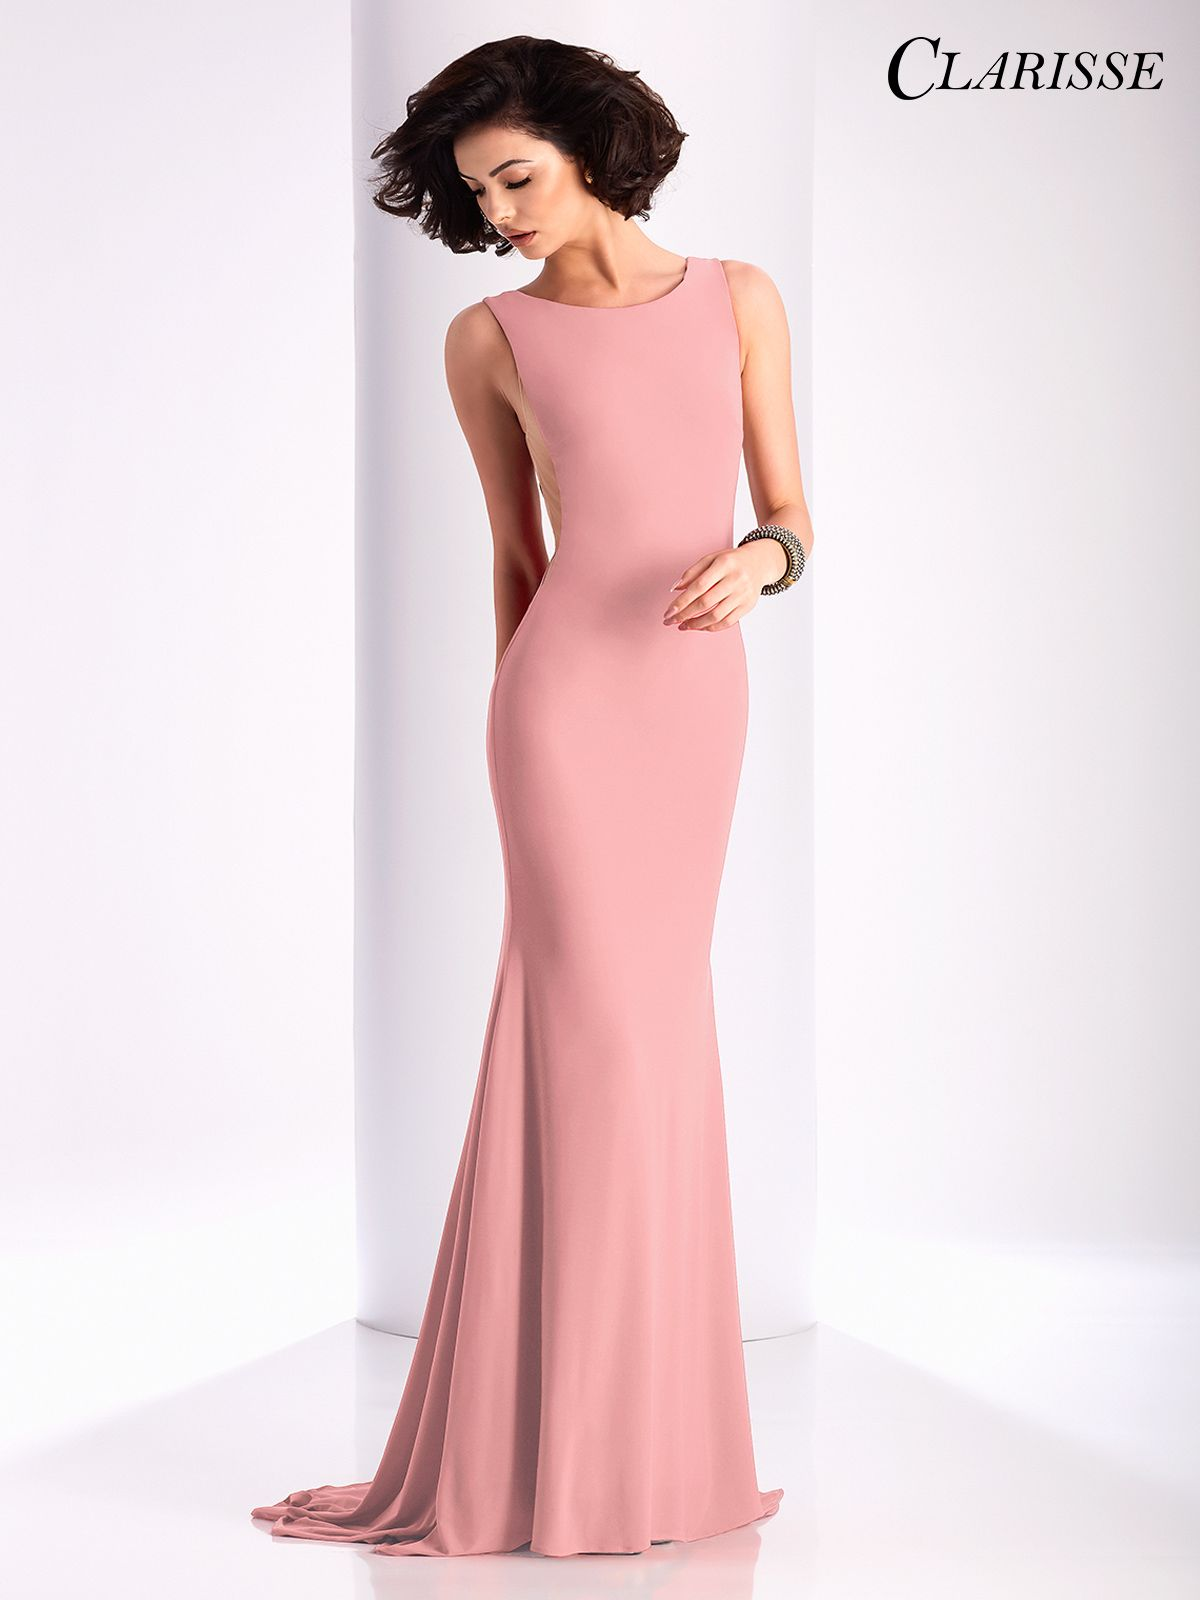 Clarisse prom dress simple and sleeveless with sheer mesh side